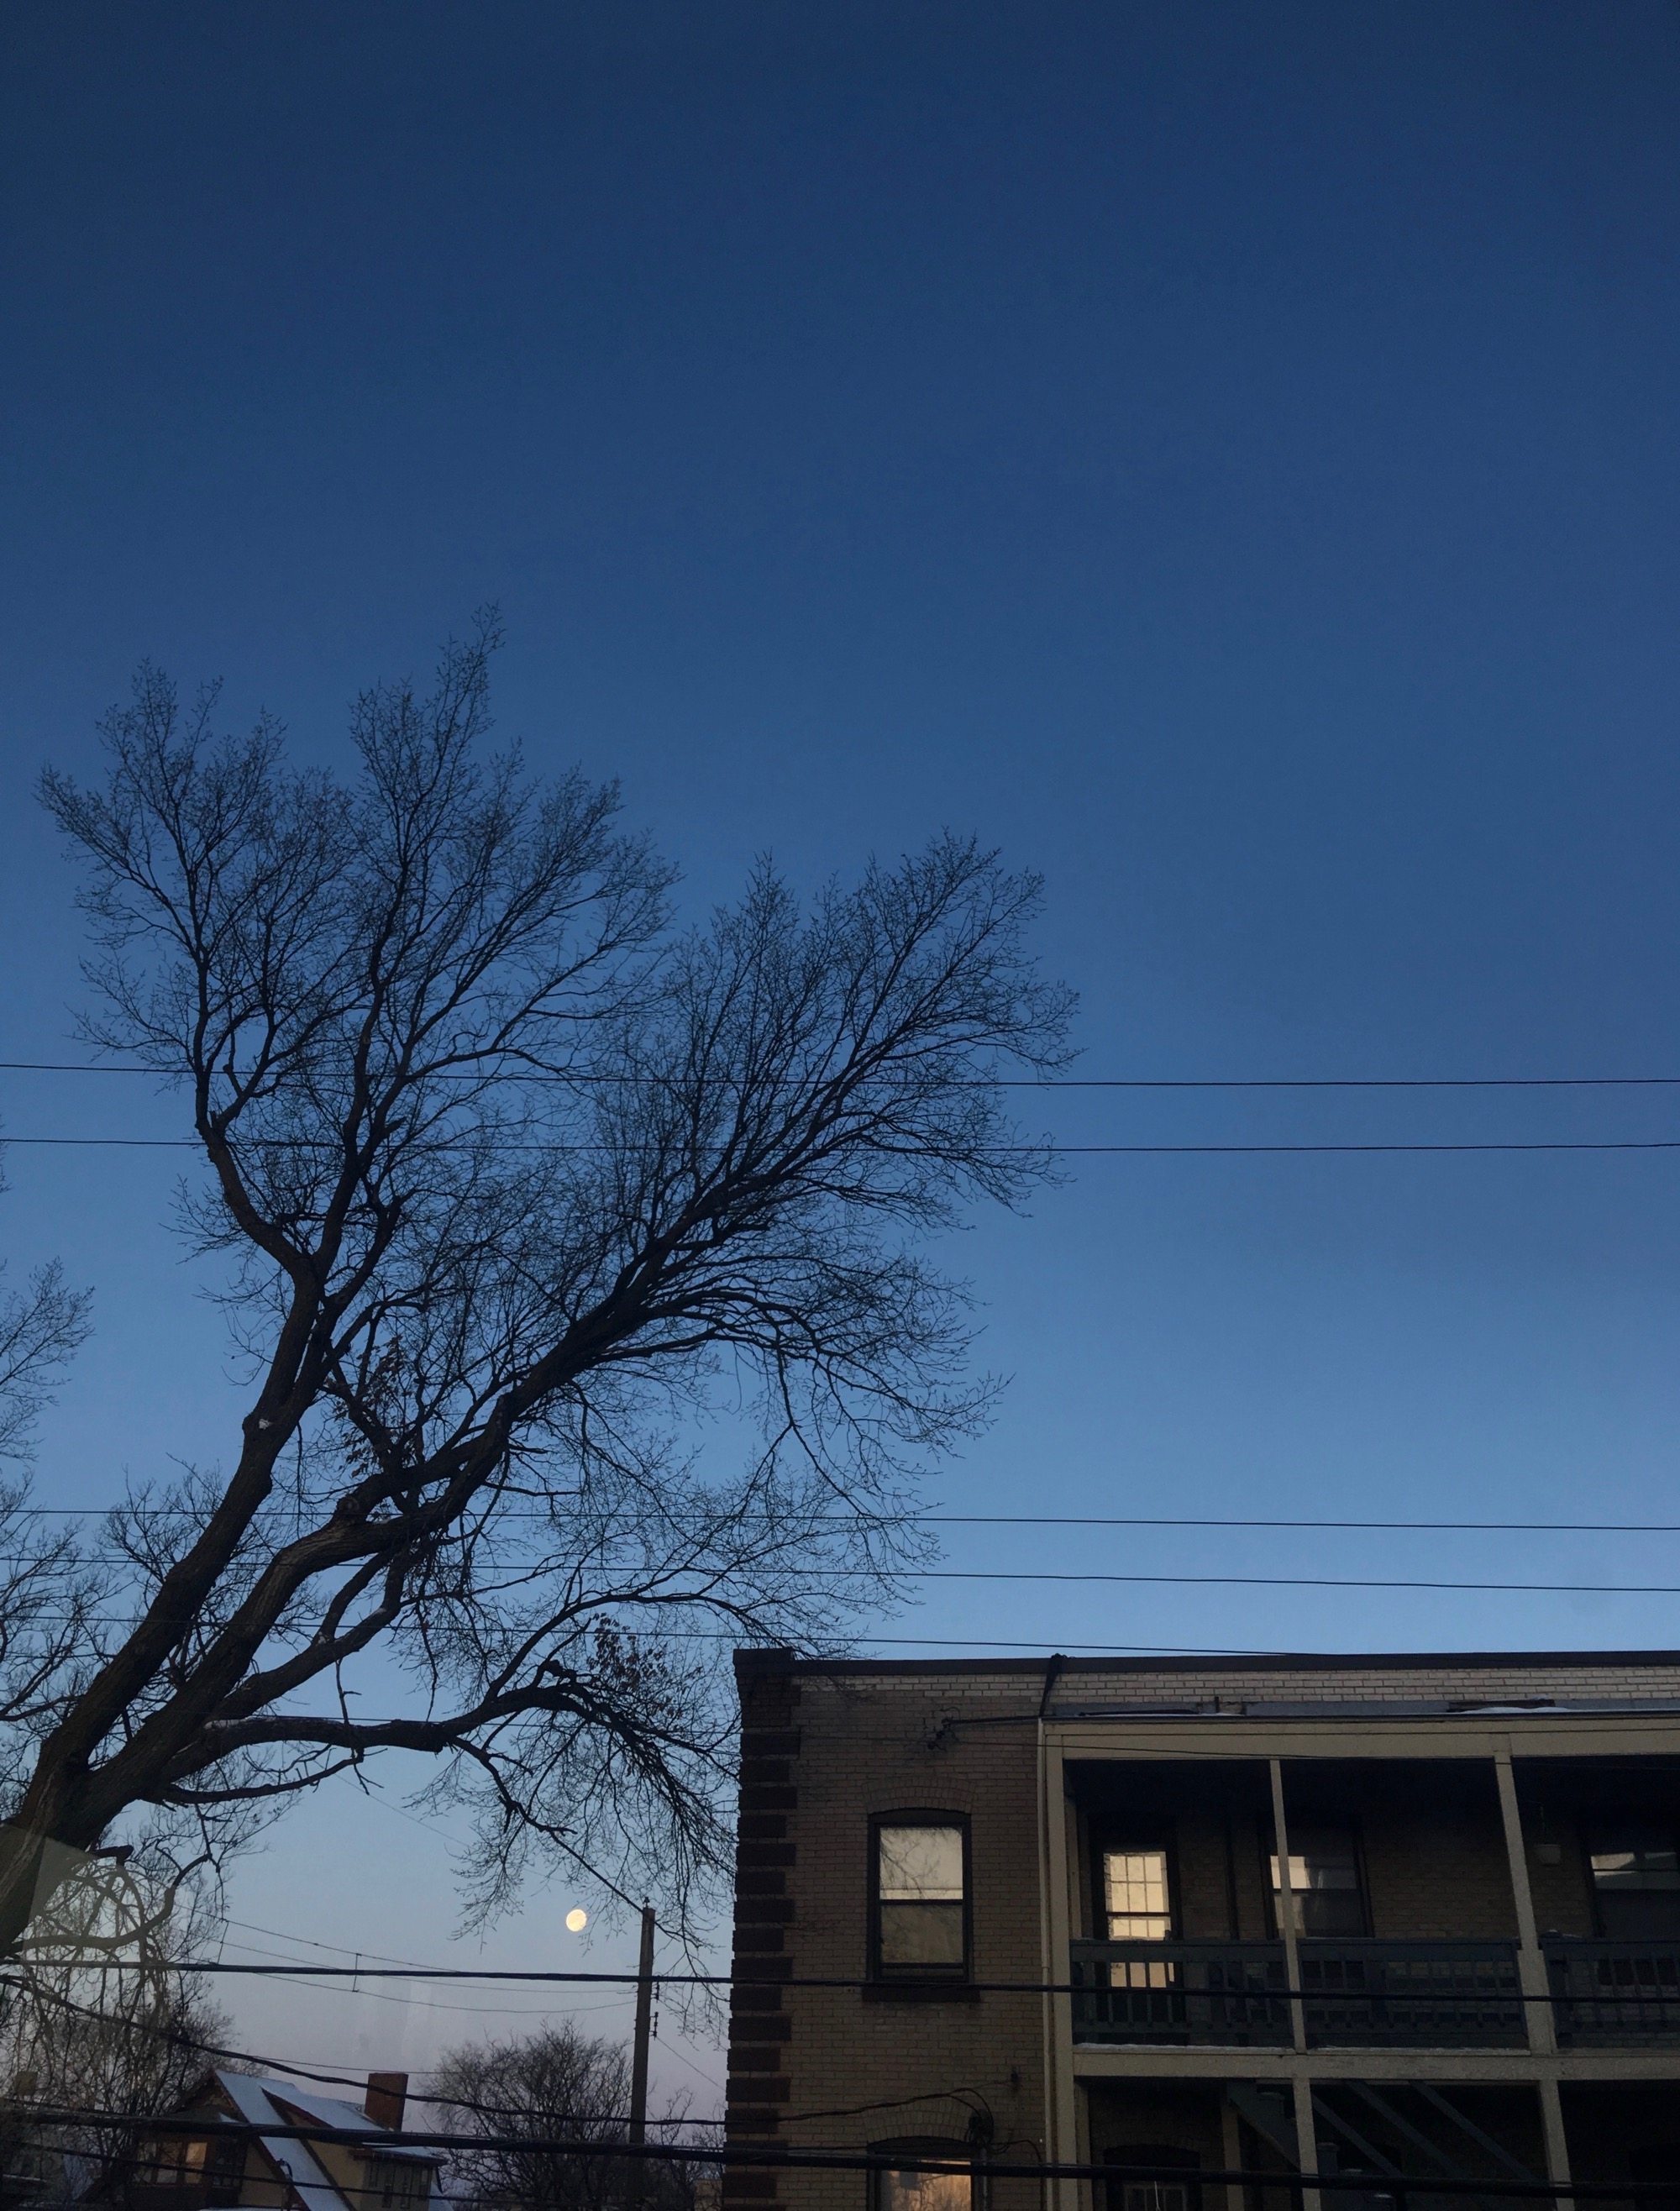 full moon between bare trees and sleeping apartment building